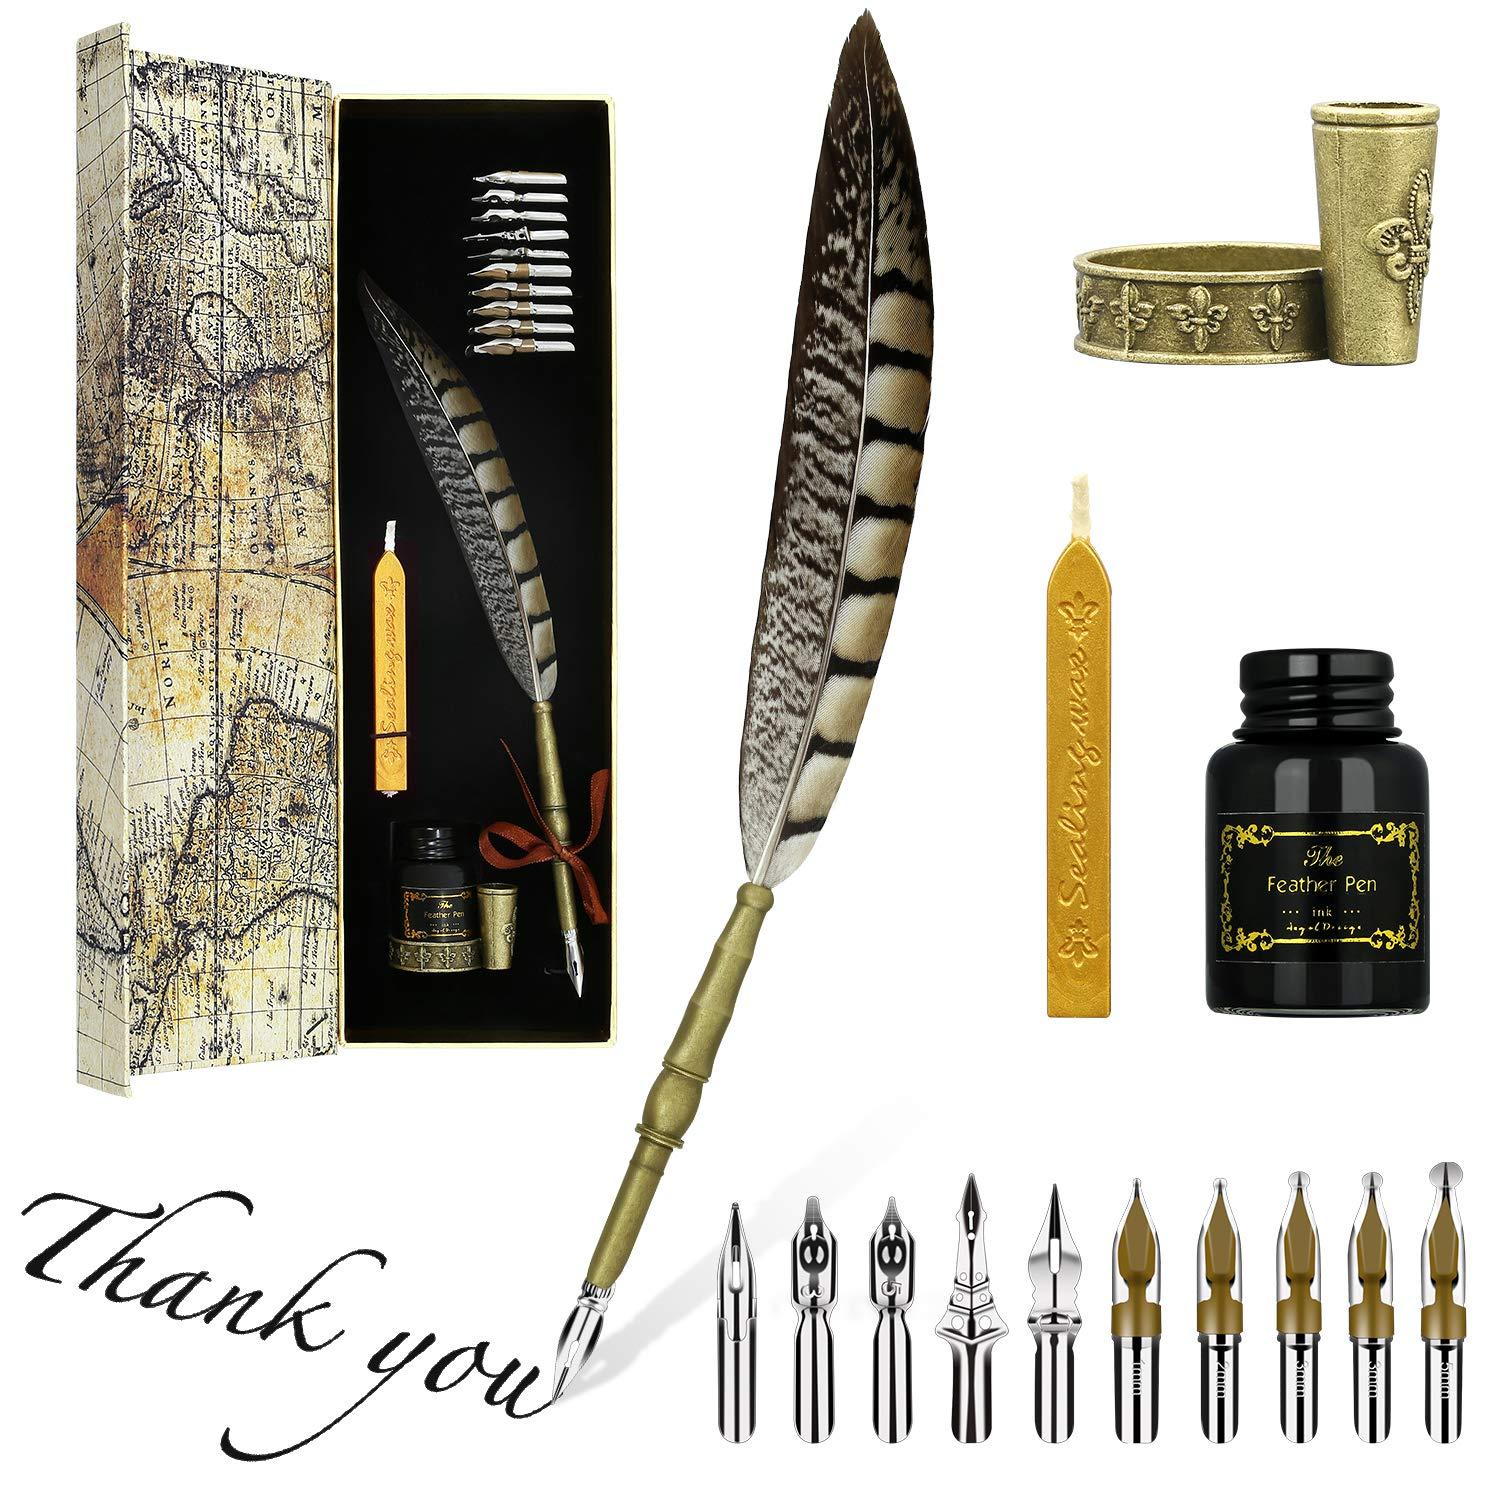 GolWof Quill Pen Dip Pen and Ink English Calligraphy Pen Set Pen 5 Feather Pen